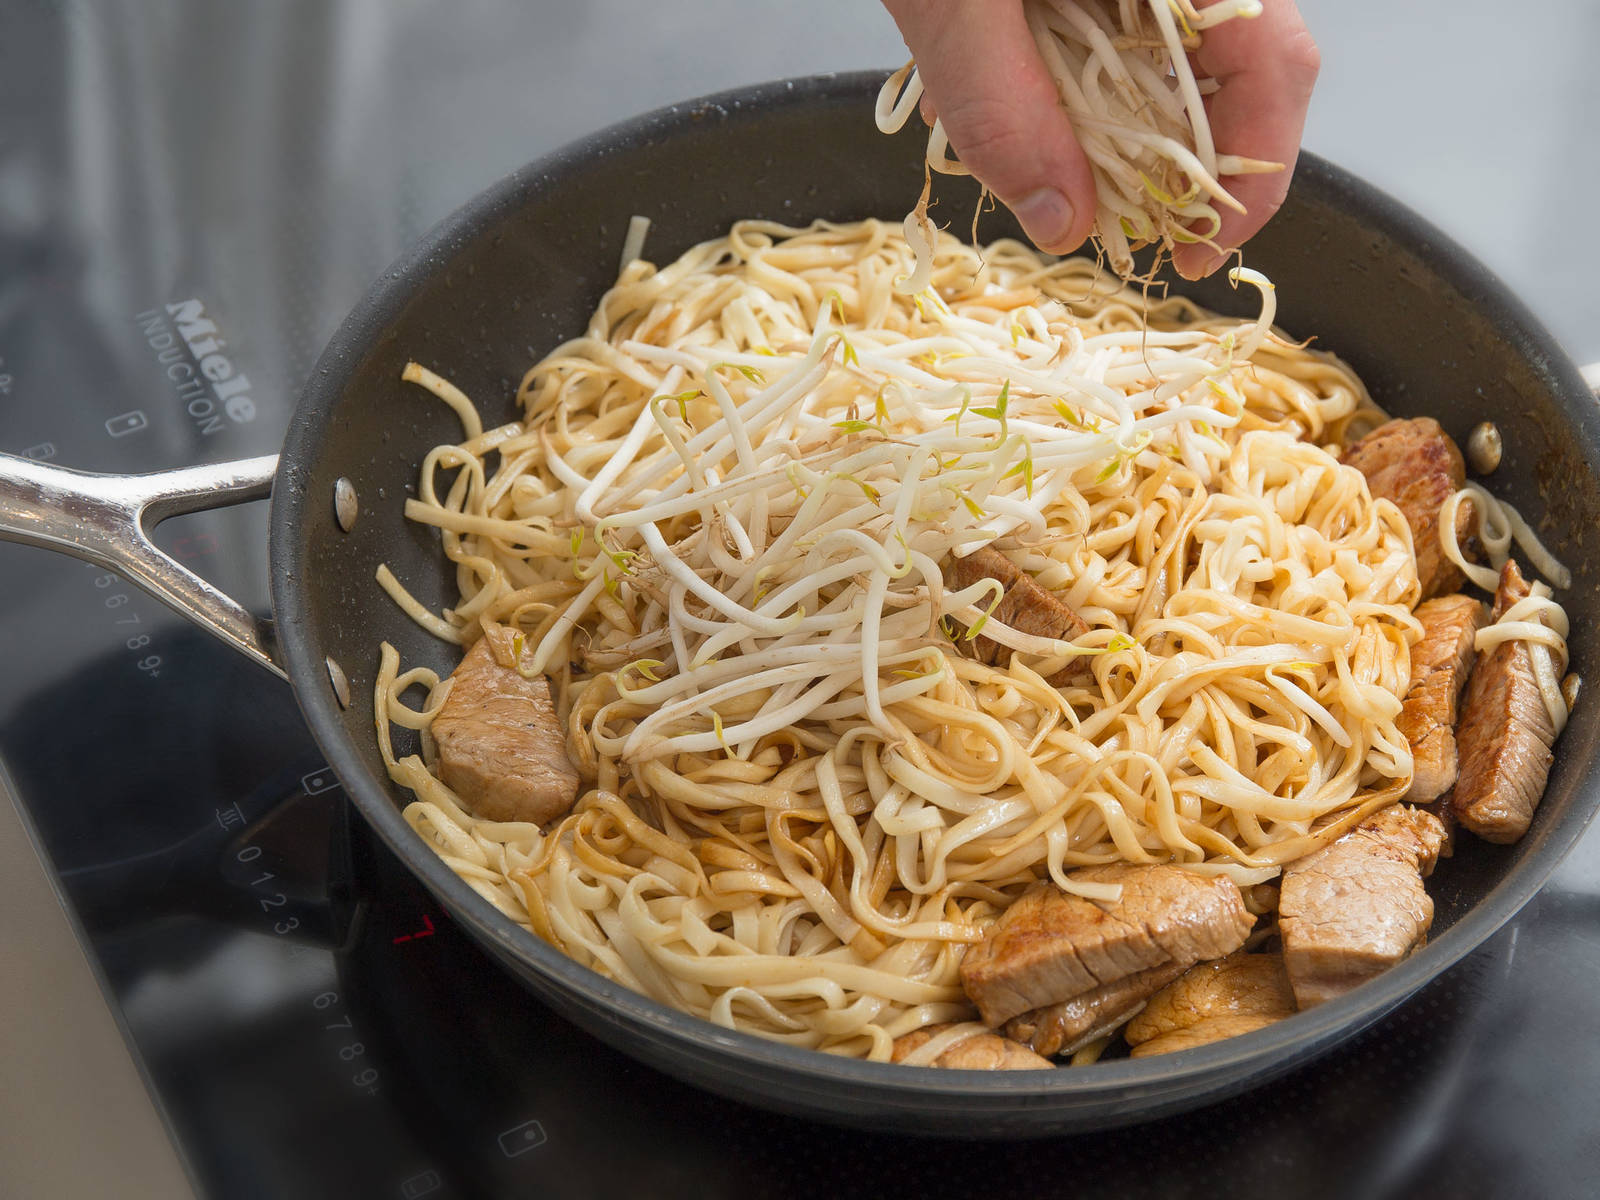 Heat remaining vegetbale oil in large frying pan set over medium-high heat. Add pork tenderloin and fry for approx. 3 min. Add cooked egg noodles and sauce and toss to coat. Fry for approx. 2 min., then reduce heat to low-medium. Add bean sprouts and sliced green onions and toss. Serve with additional green onions on top. Enjoy!